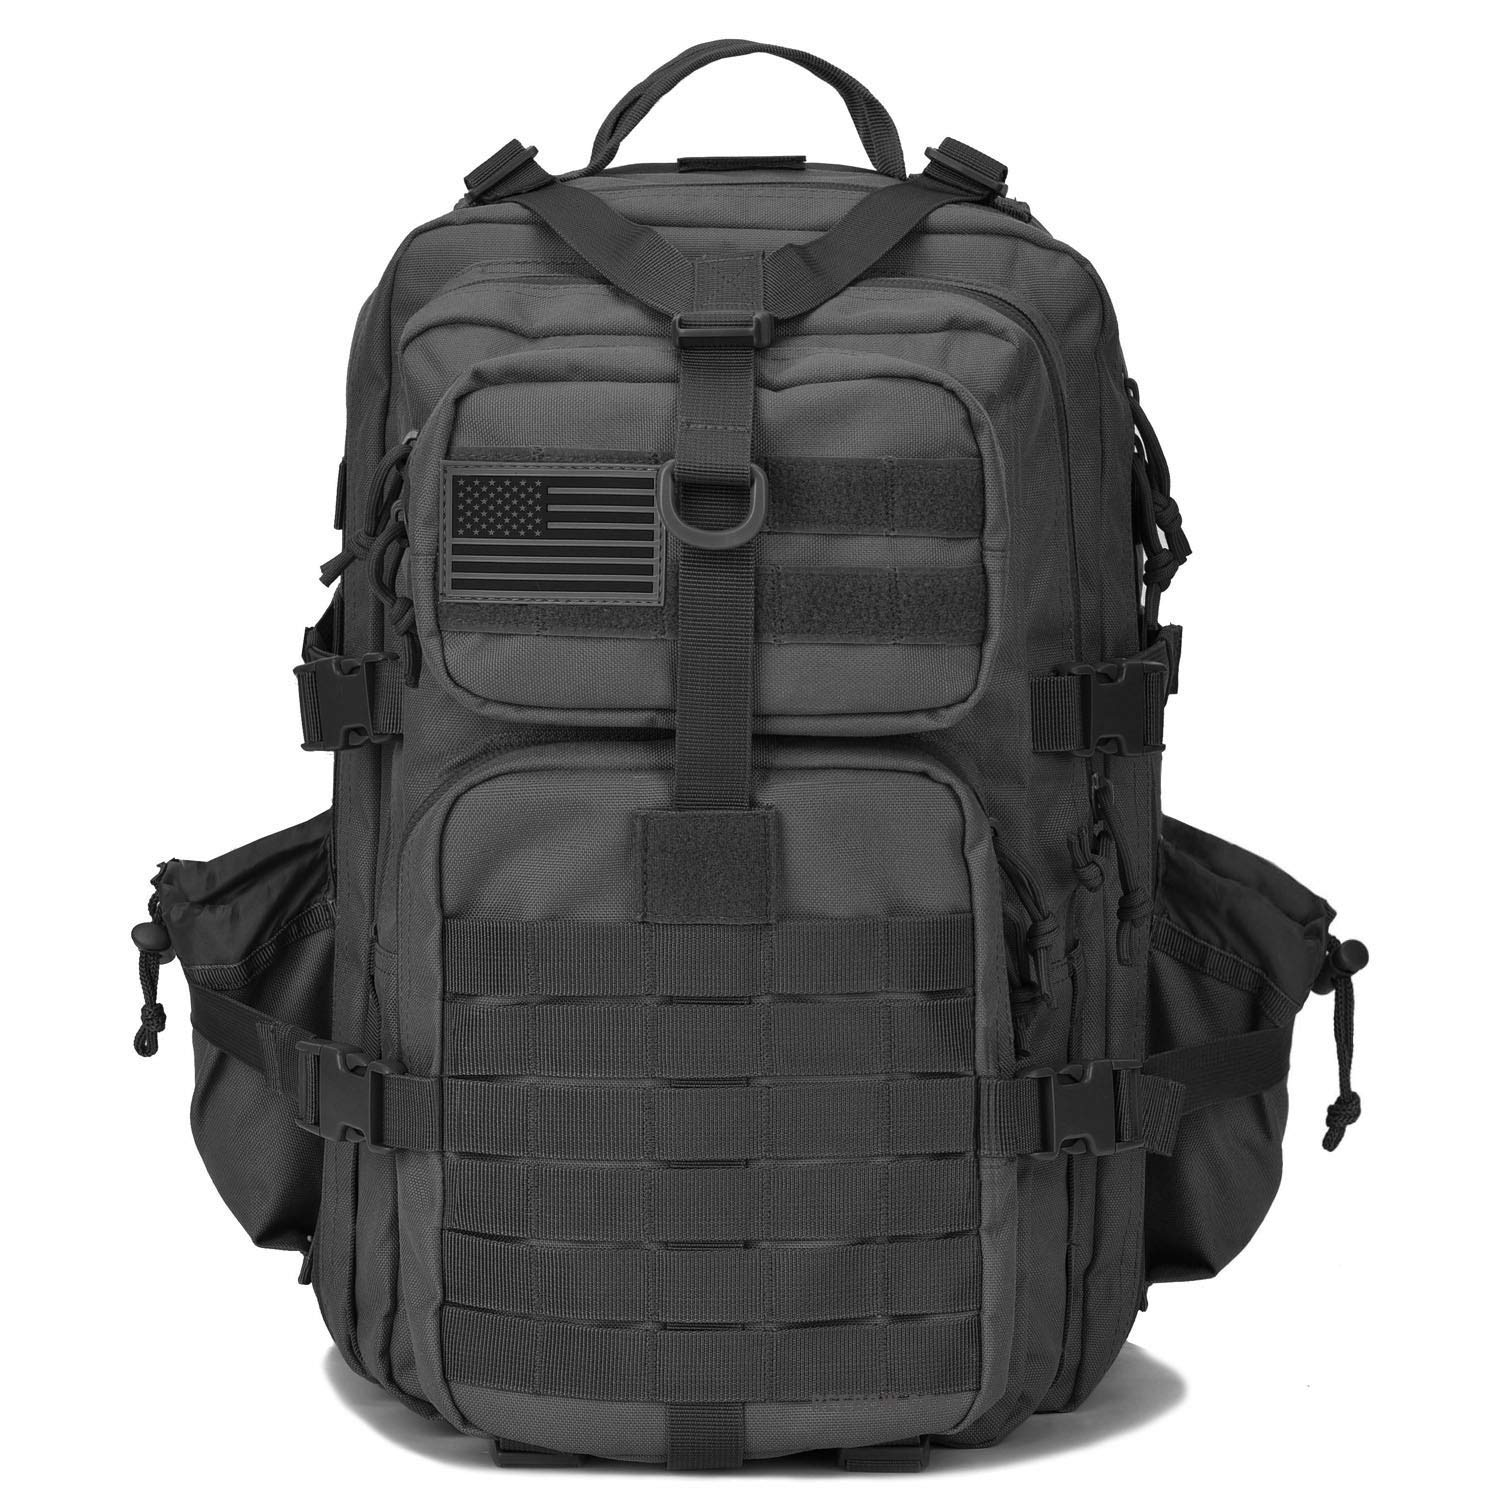 Military Tactical Backpack w/Bottle Holder, Small 3 Day Assault Pack Army Molle Bug Out Bag Backpacks Rucksack for Hiking Camping Trekking Hunting Travel Black [並行輸入品] B07R4WPJLV